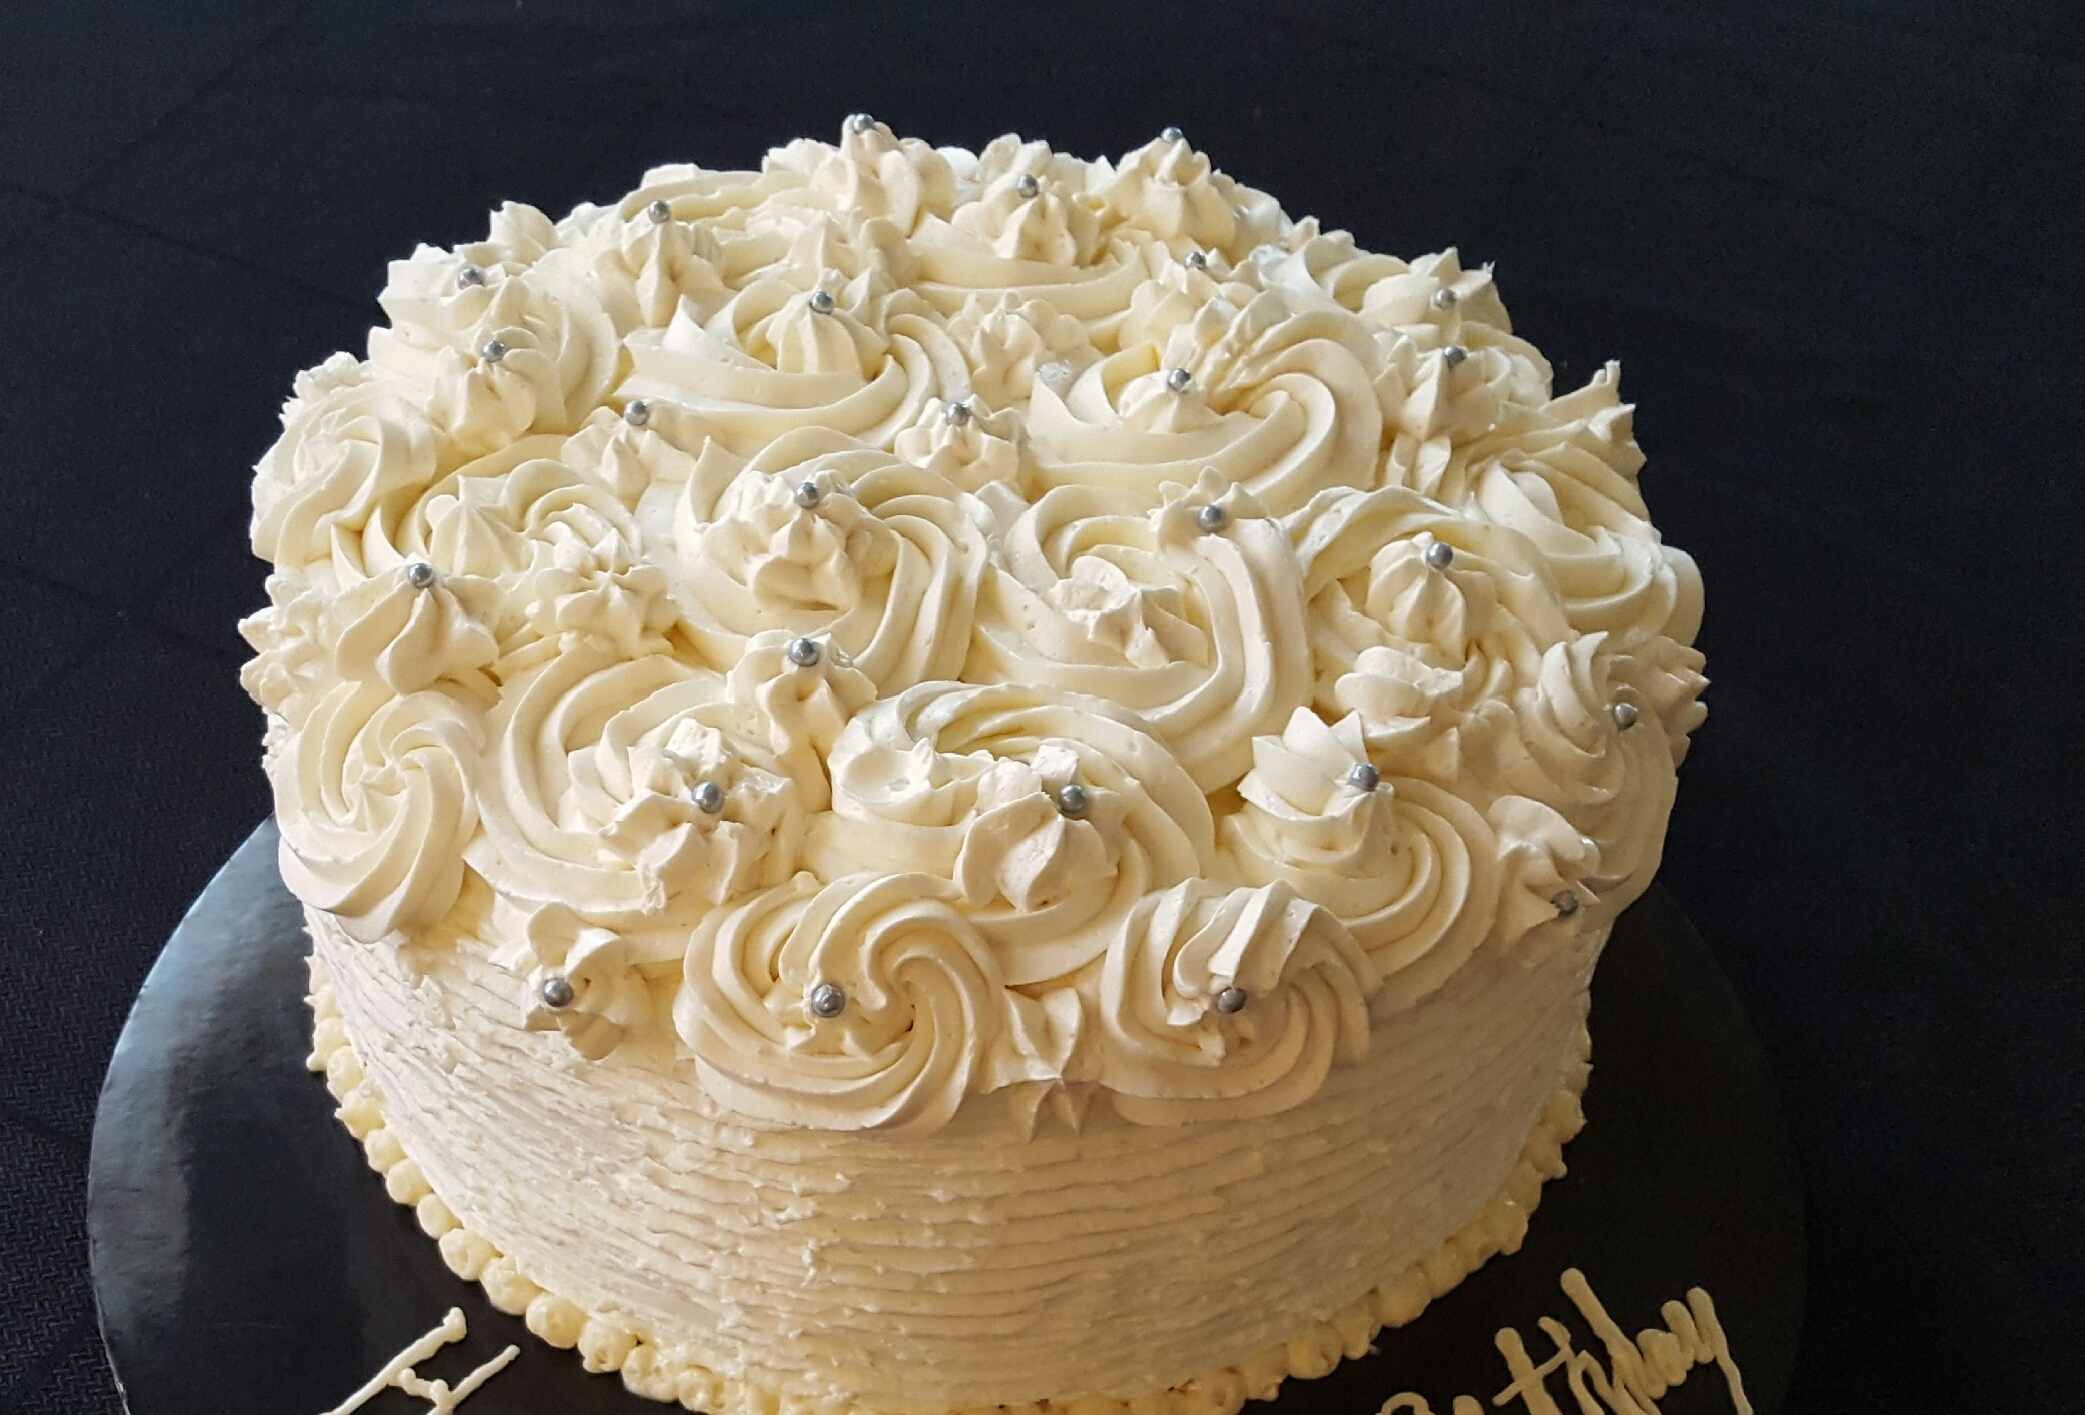 Sweet Aniese Catering and Dessert Bar (Catering and Desserts)